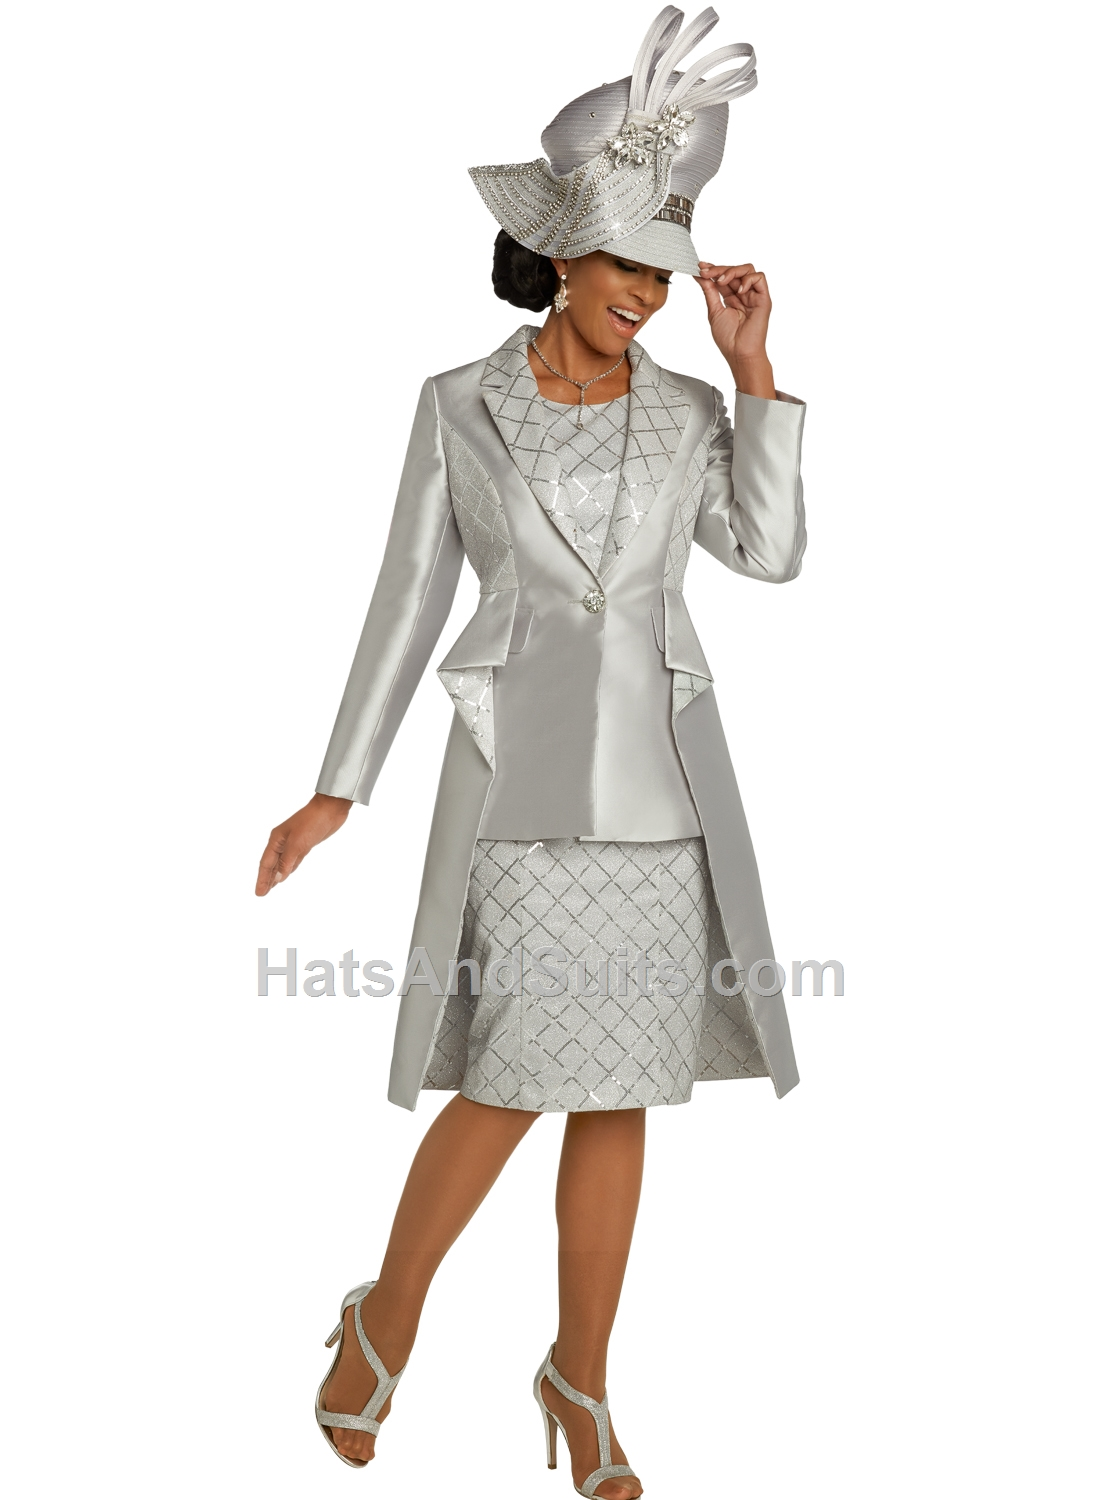 5670 Donna Vinci Couture 2 Pc. Dress & Jacket Set. SP20